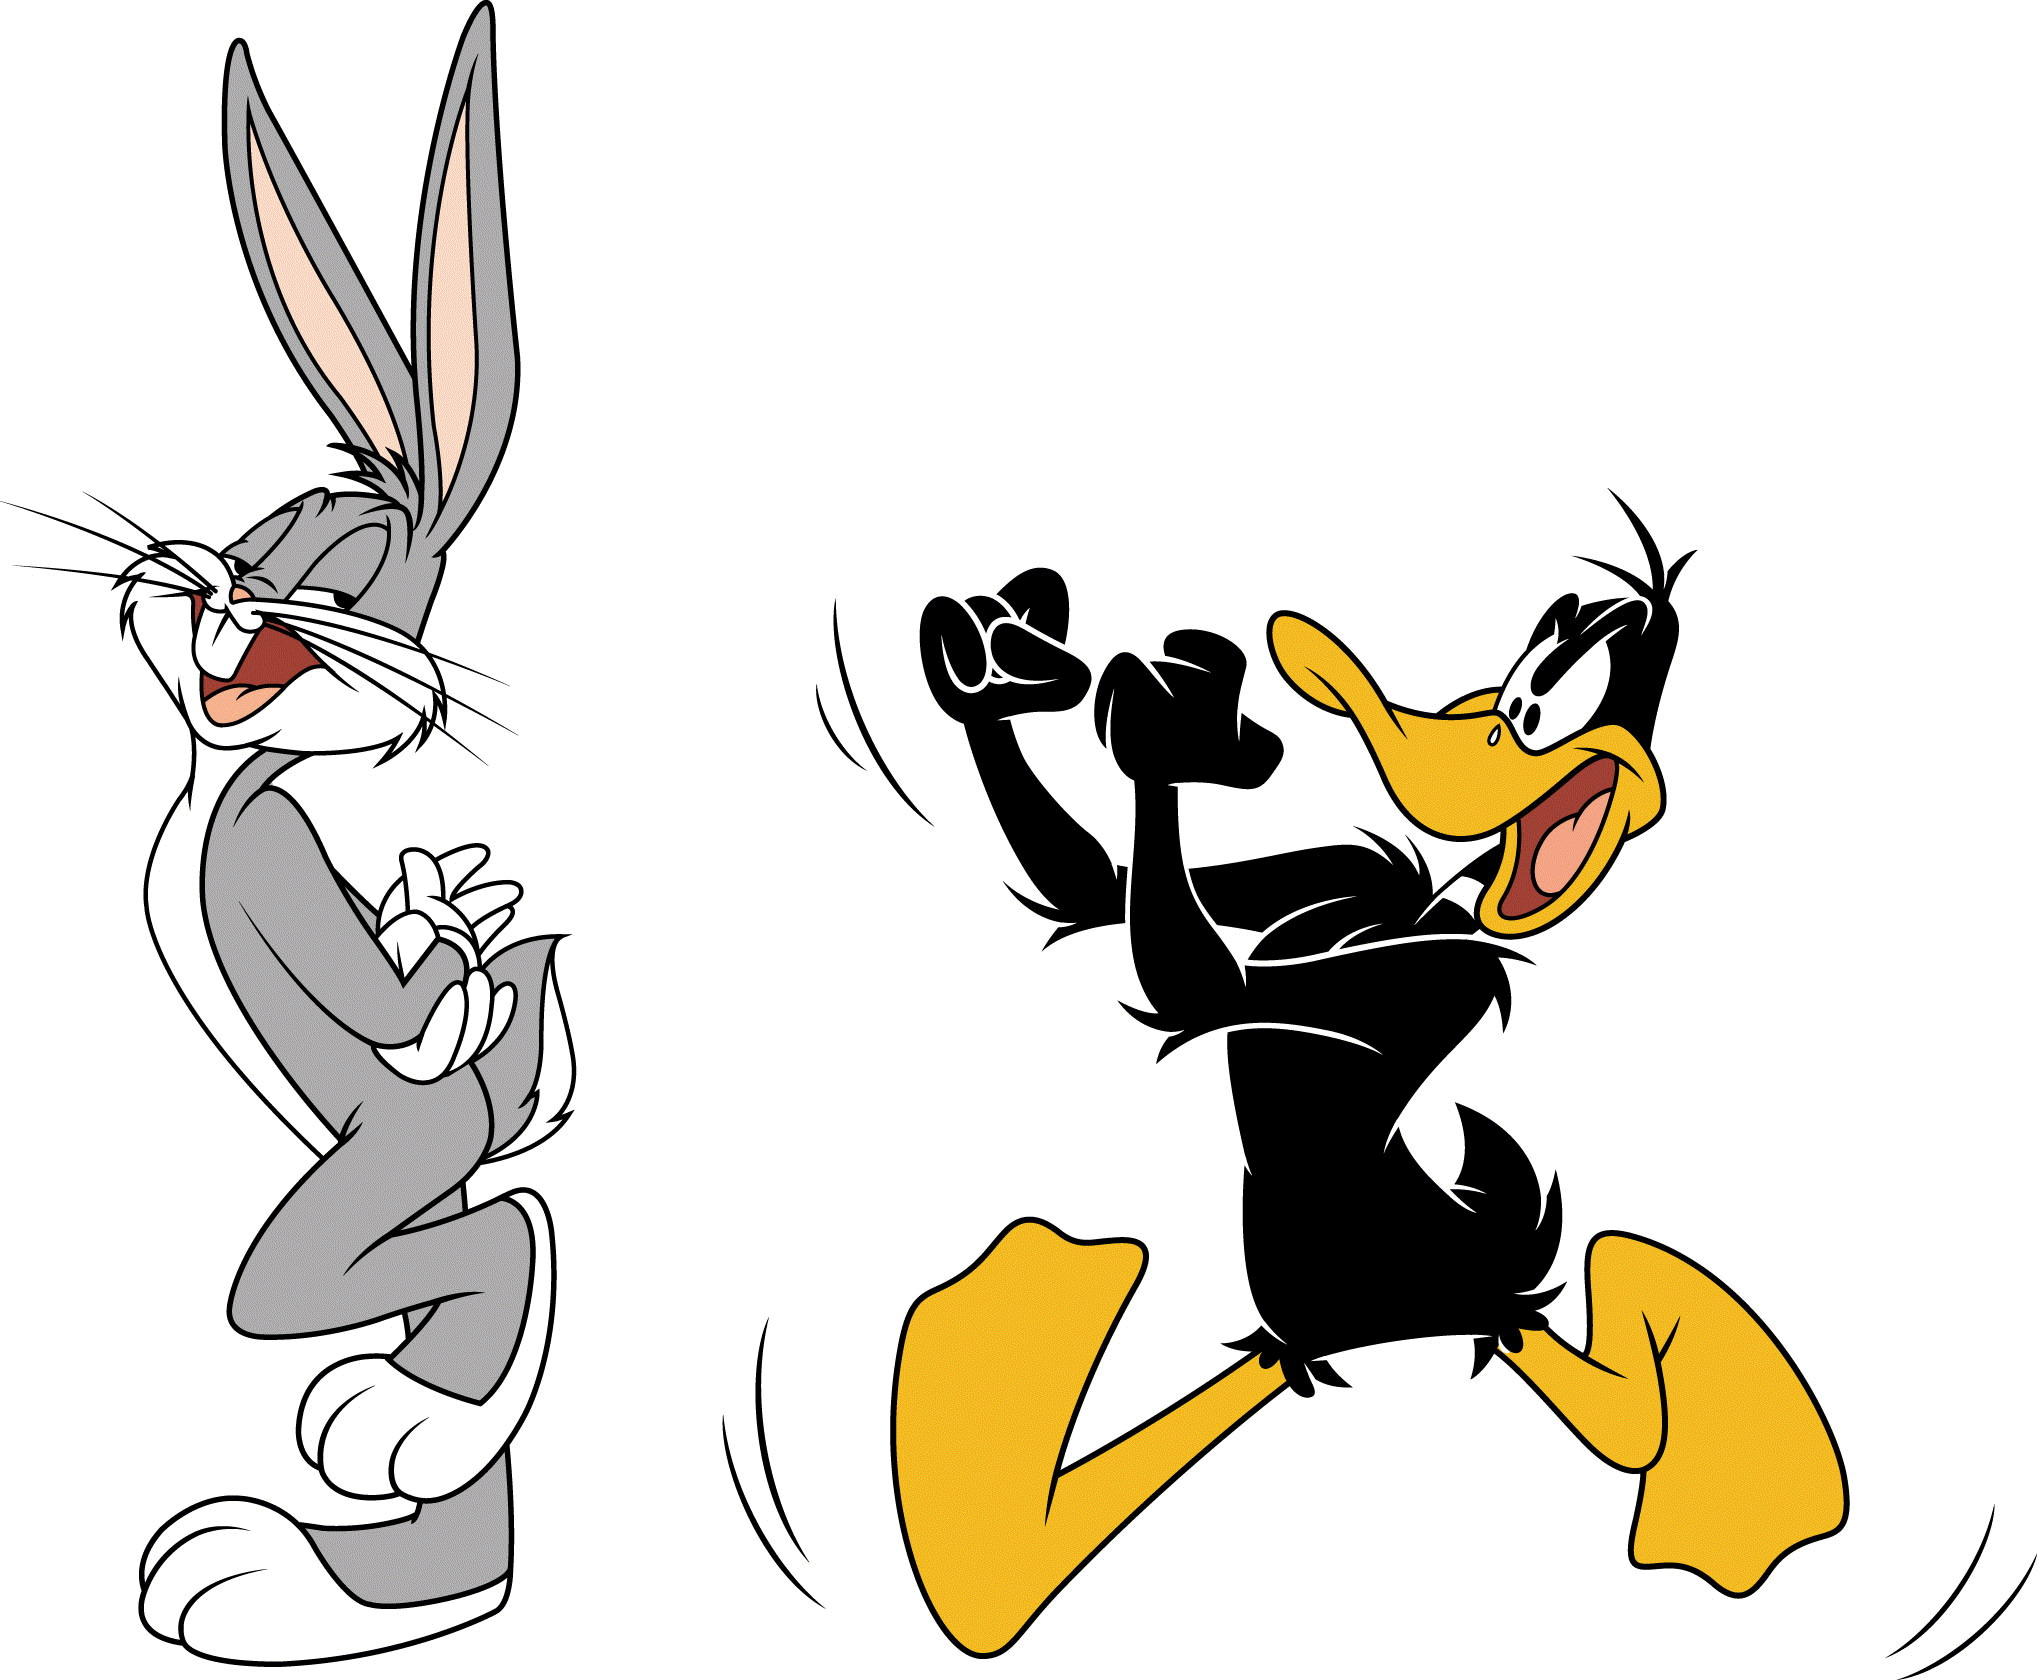 Free Looney Tunes Clipart, Download Free Clip Art, Free Clip.